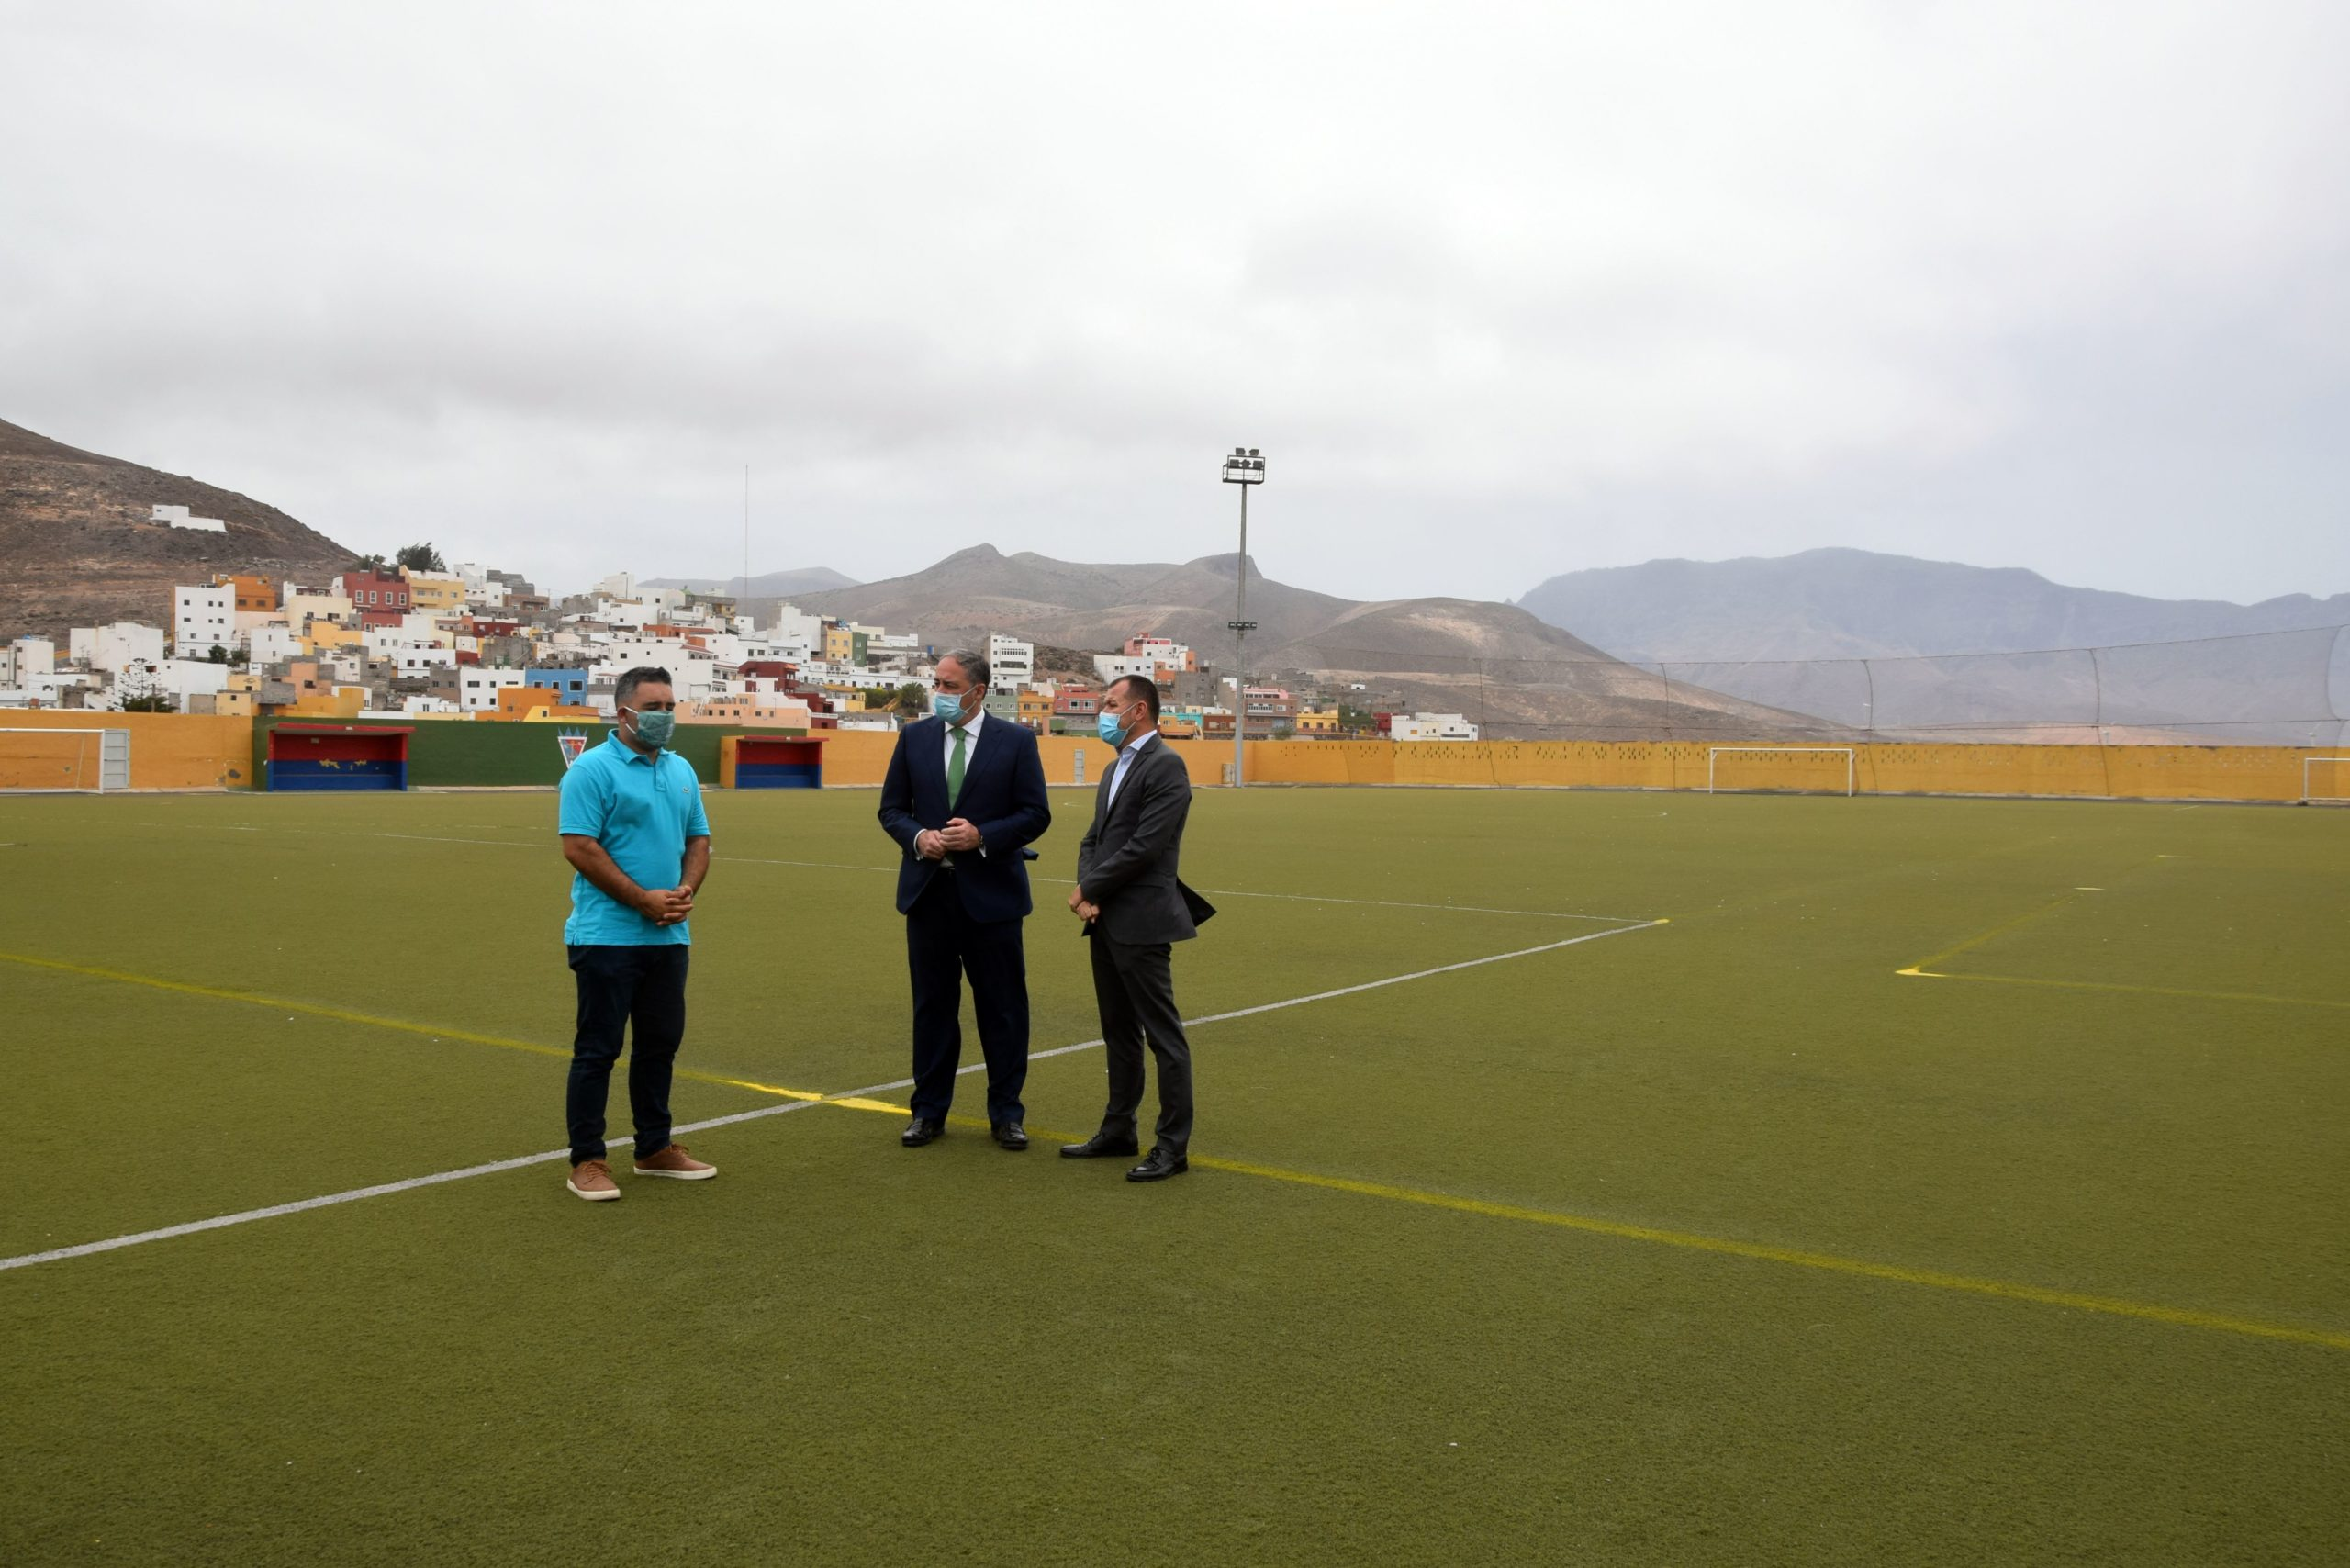 El Estadio de Sardina renovará su césped artificial